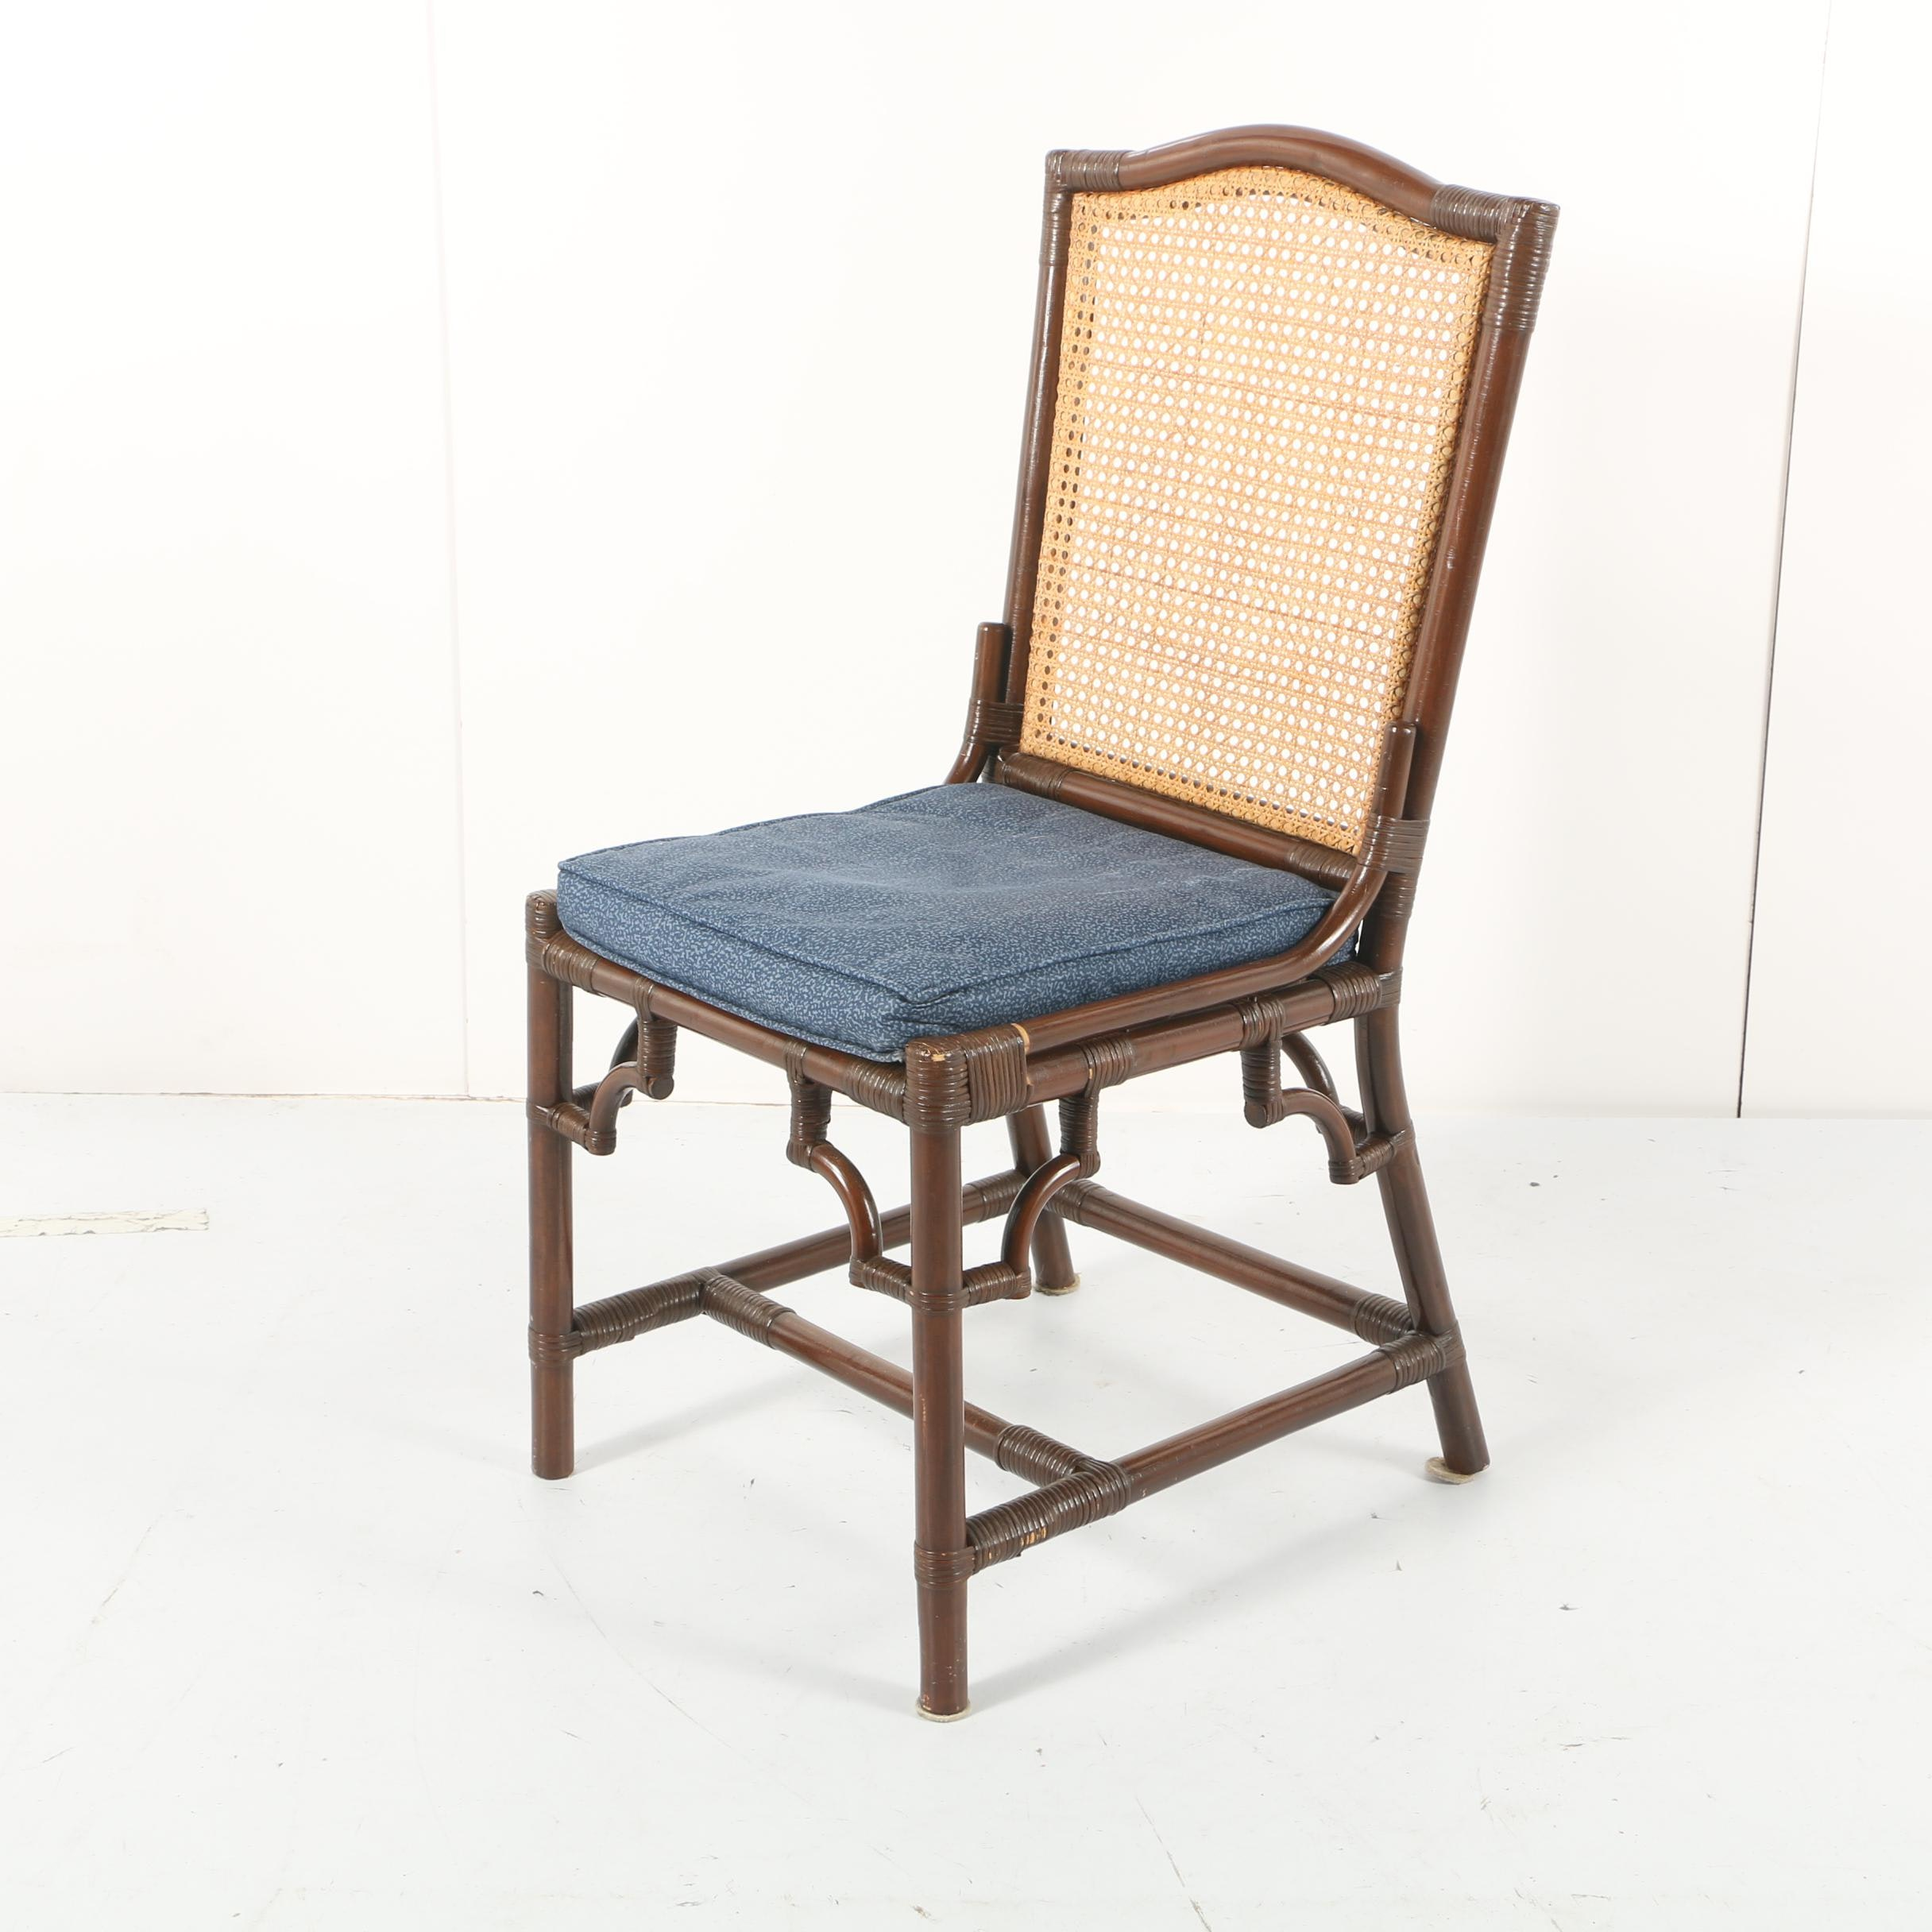 Cane Back Bamboo Style Chair